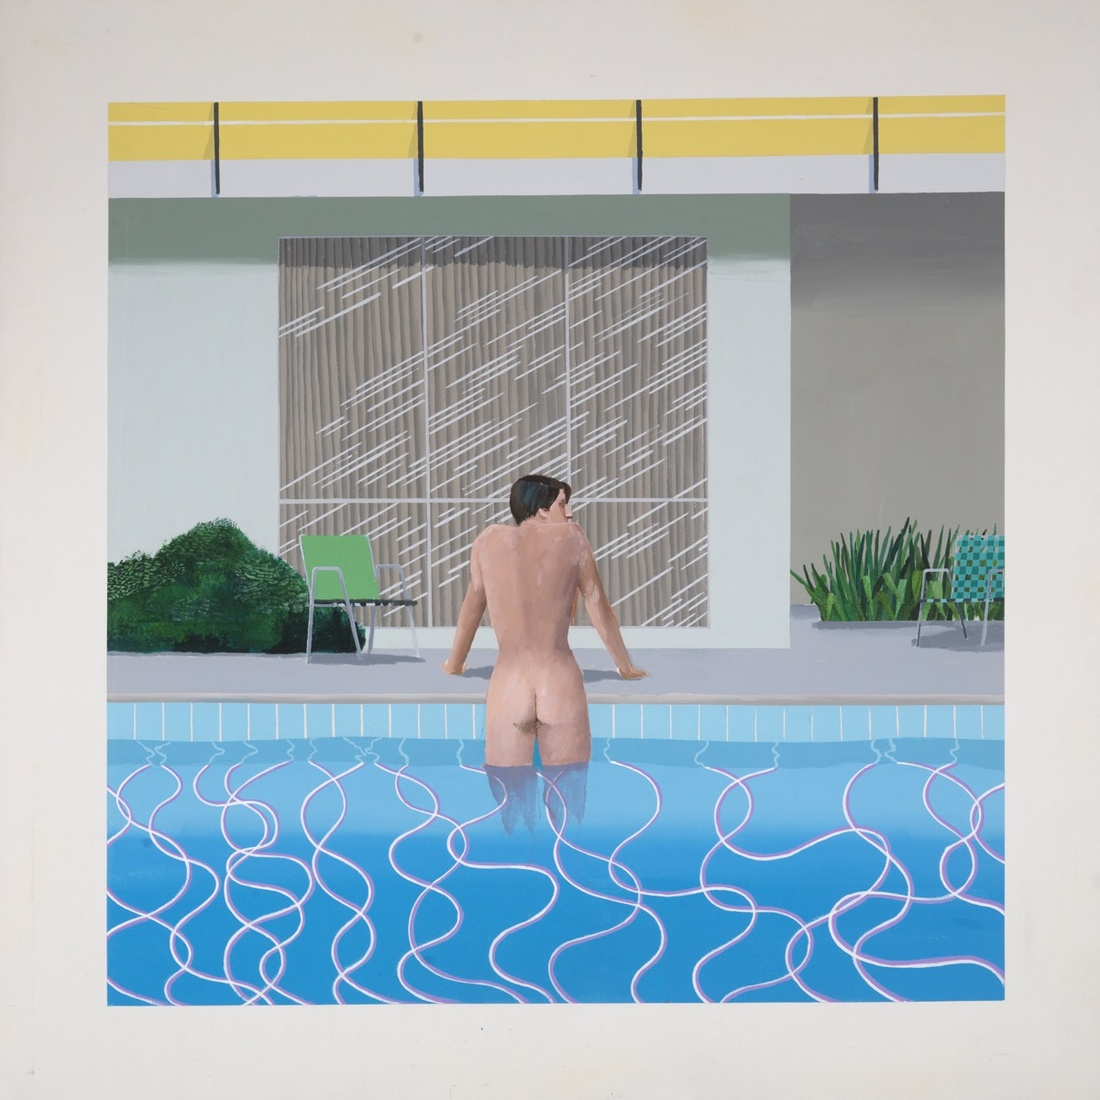 David Hockney,Peter Getting Out of Nick's Pool, 1966. © David Hockney. Collection of National Museums Liverpool, Walker Art Gallery. Presented by Sir John Moores 1968. Photo: Richard Schmidt. Image courtesy of Tate.